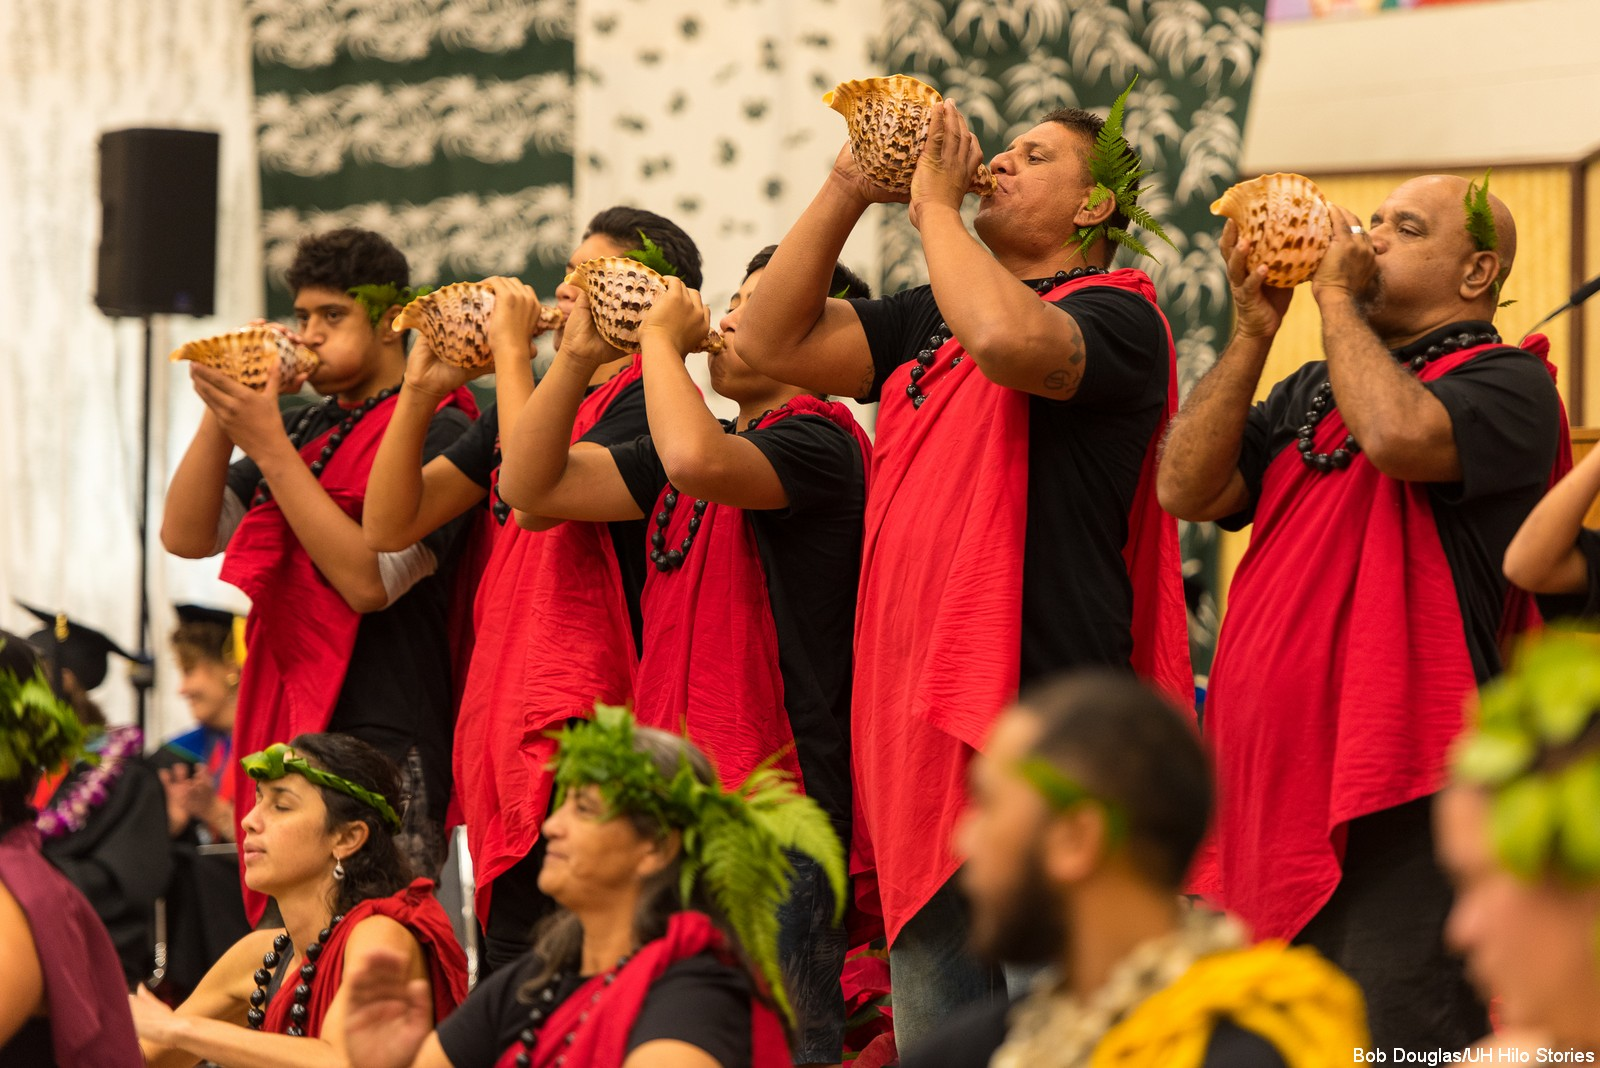 Group blows conch shells. Dressed in dramatic red and black.